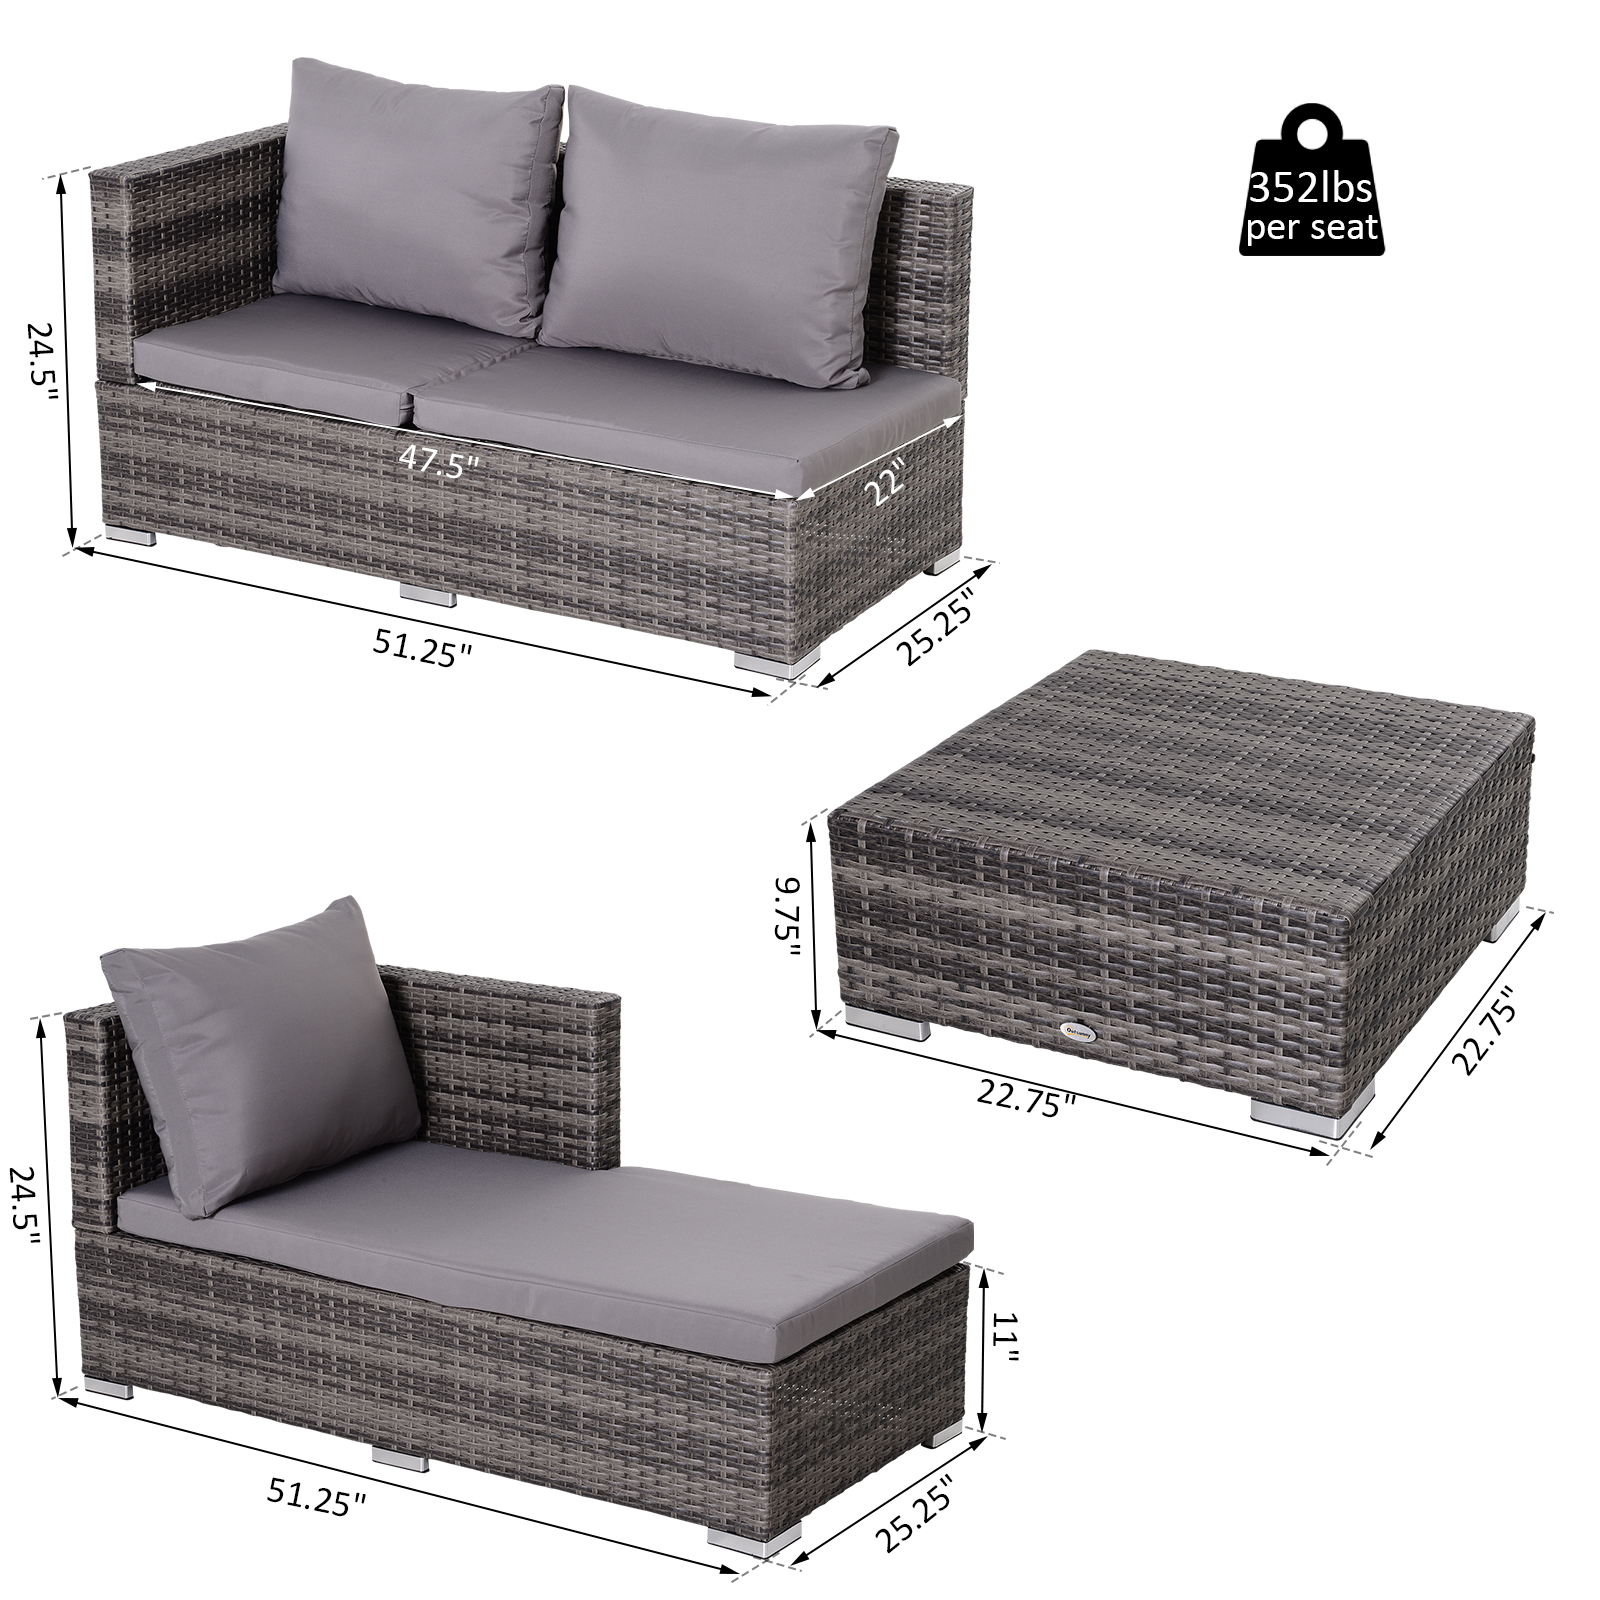 3-Piece-Adjustable-Seat-Rattan-Wicker-Sofa-Set-Sleeping-Couch-Bed-Lounge-Grey miniature 2